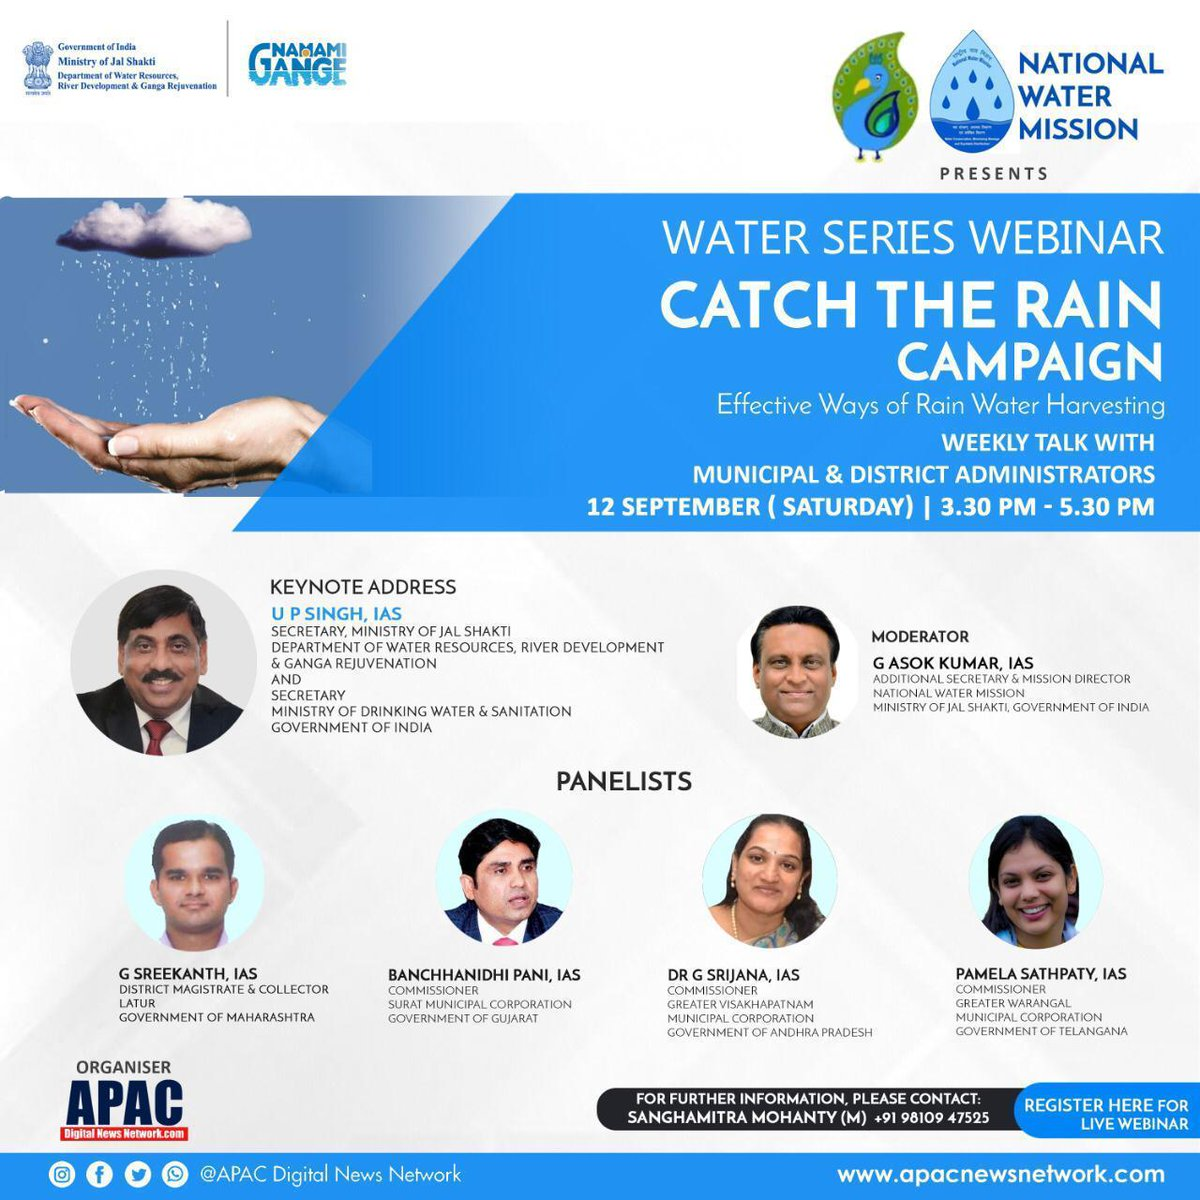 Join SMC comissioner Shri Banchhaanidhi Pani in water series webinar #CatchTheRainCampaign . Discussing effective ways of rain water harvesting. For registration visit apacnewsnetwork.com/apac-dialogue/